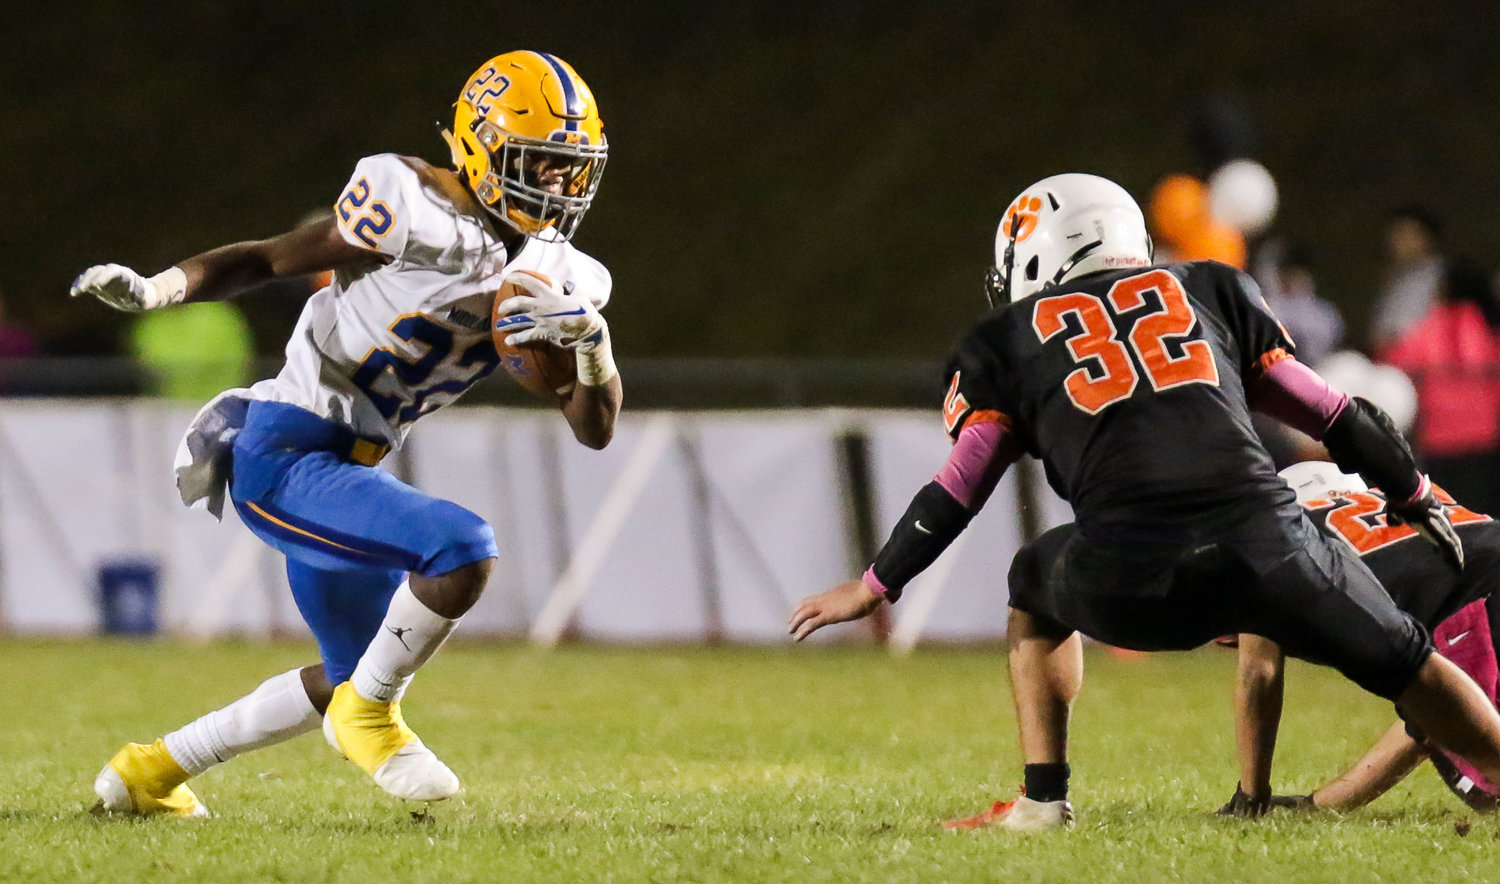 Chris Joseph looks for running room Oct. 19 vs. East Pennsboro.